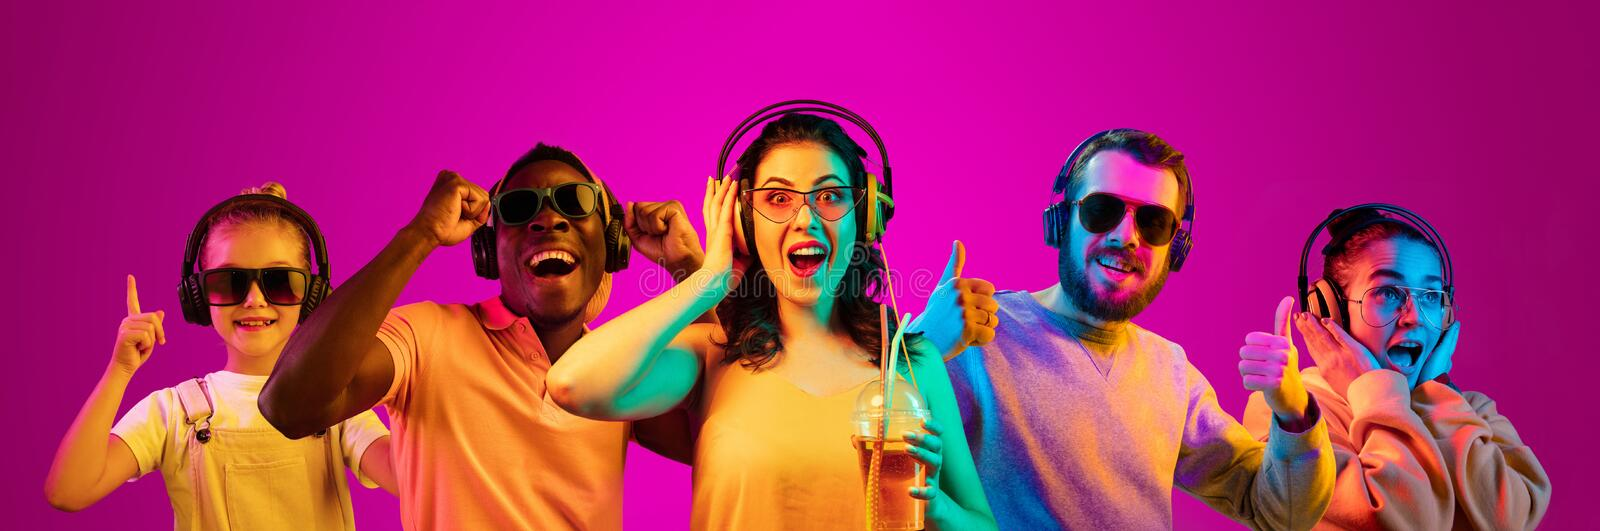 Beautiful young people in neon light isolated on pink studio background stock images